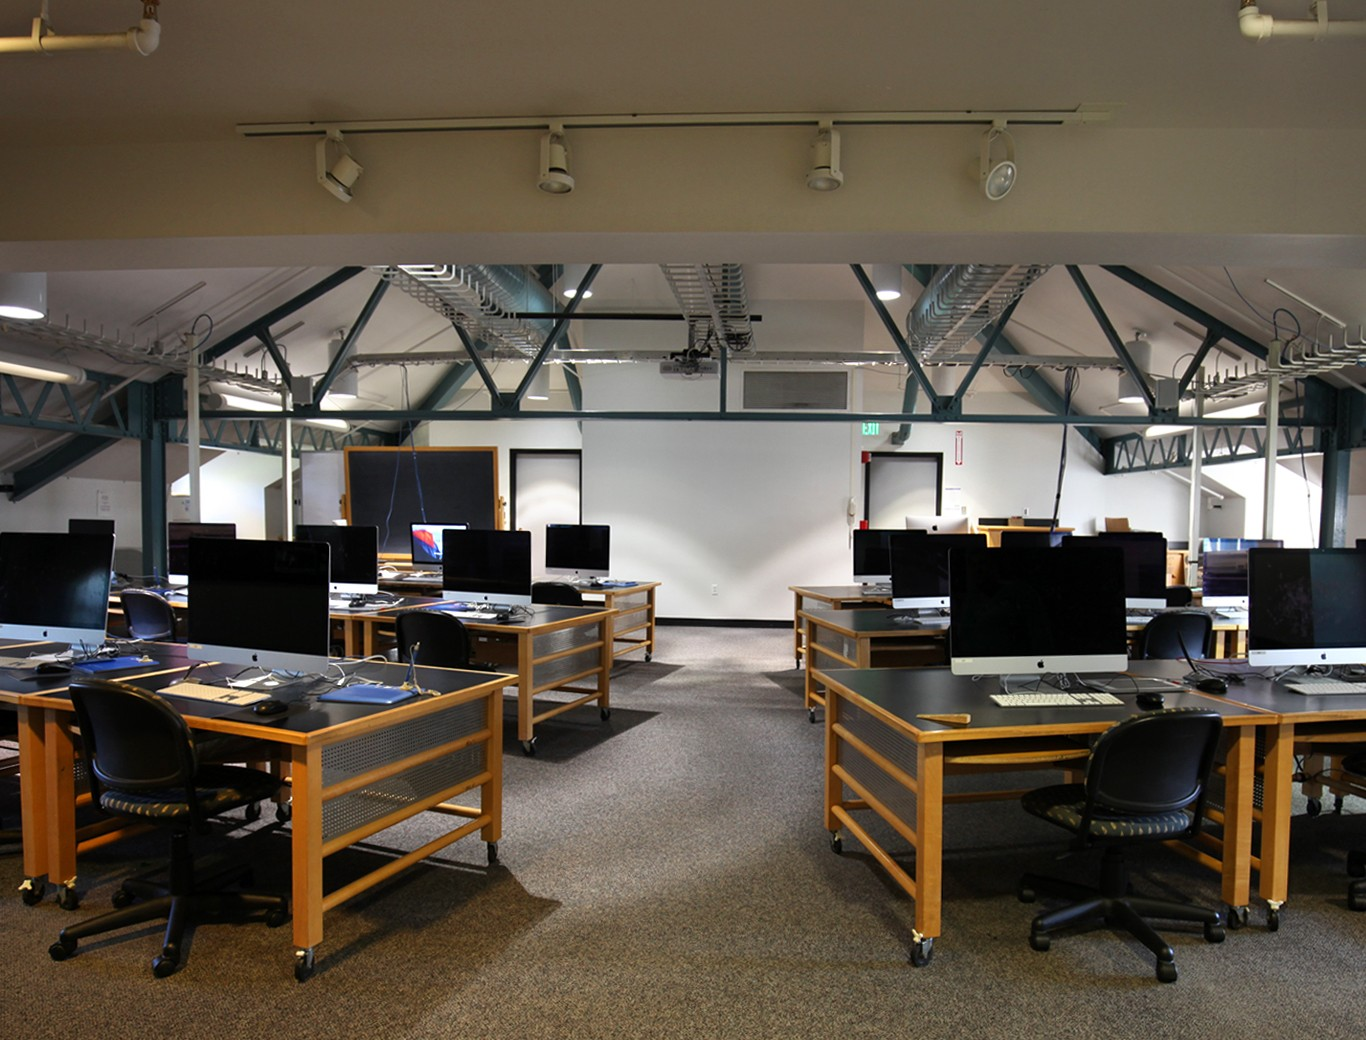 The Digital Arts Design Studio features a state of the art digital media lab offering students a wide variety of instructional space, tools, and equipment to work with.